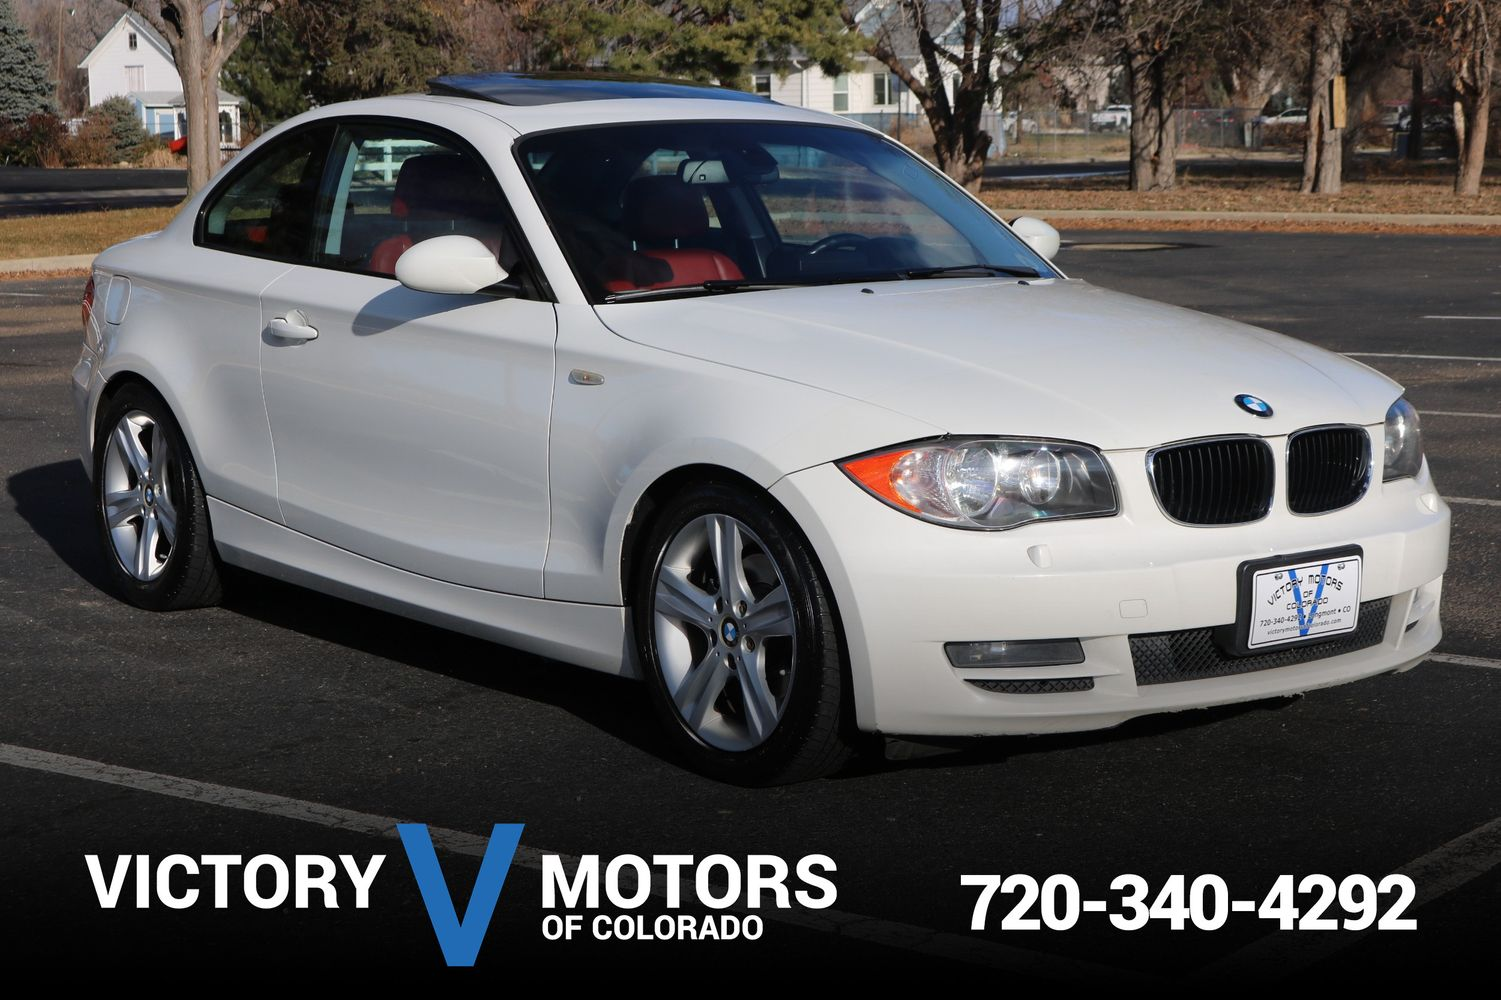 BMW Convertible 2008 bmw 128i owners manual 2008 BMW 128i | Victory Motors of Colorado